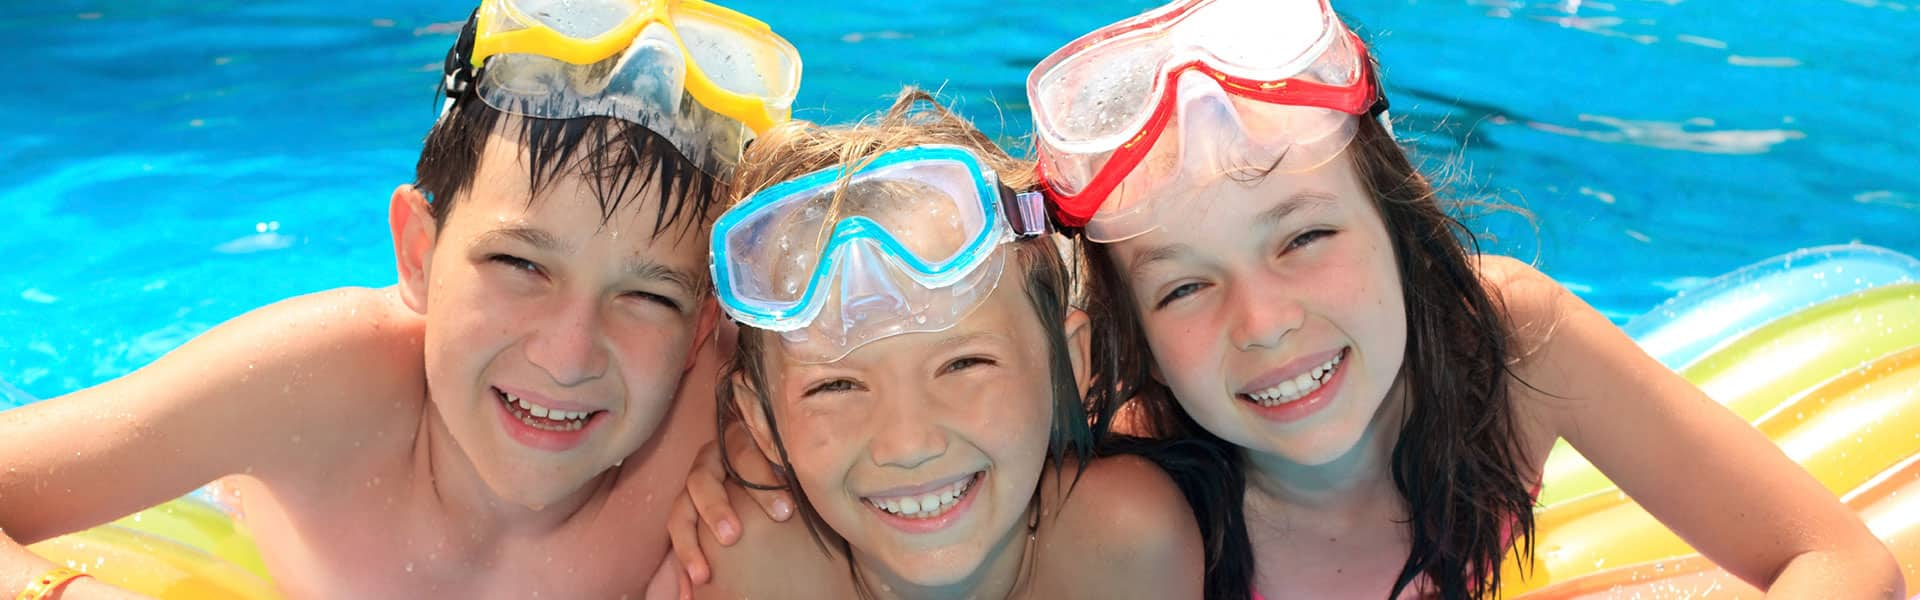 6 Pool Games Everyone in Your Family Will Love to Play This Summer!